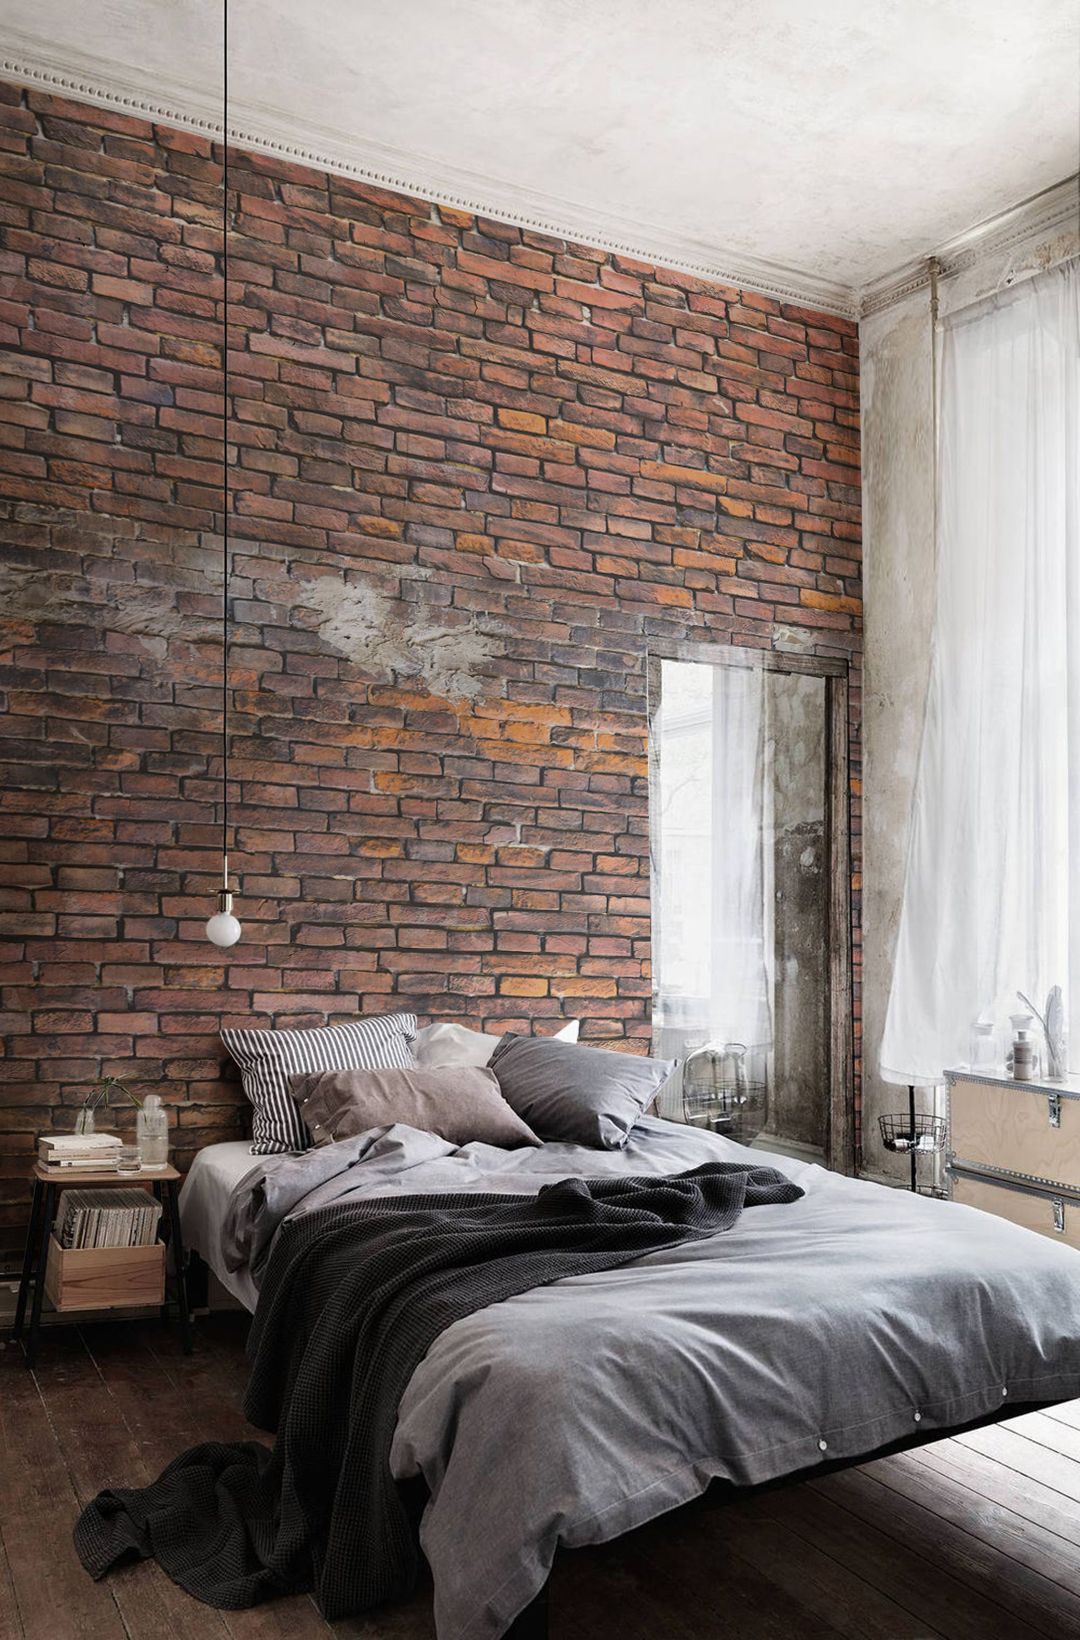 Superior The 25+ Best Brick Wallpaper Bedroom Ideas On Pinterest | Brick Wallpaper,  White Brick Wallpaper And Brick Wall Bedroom Part 14